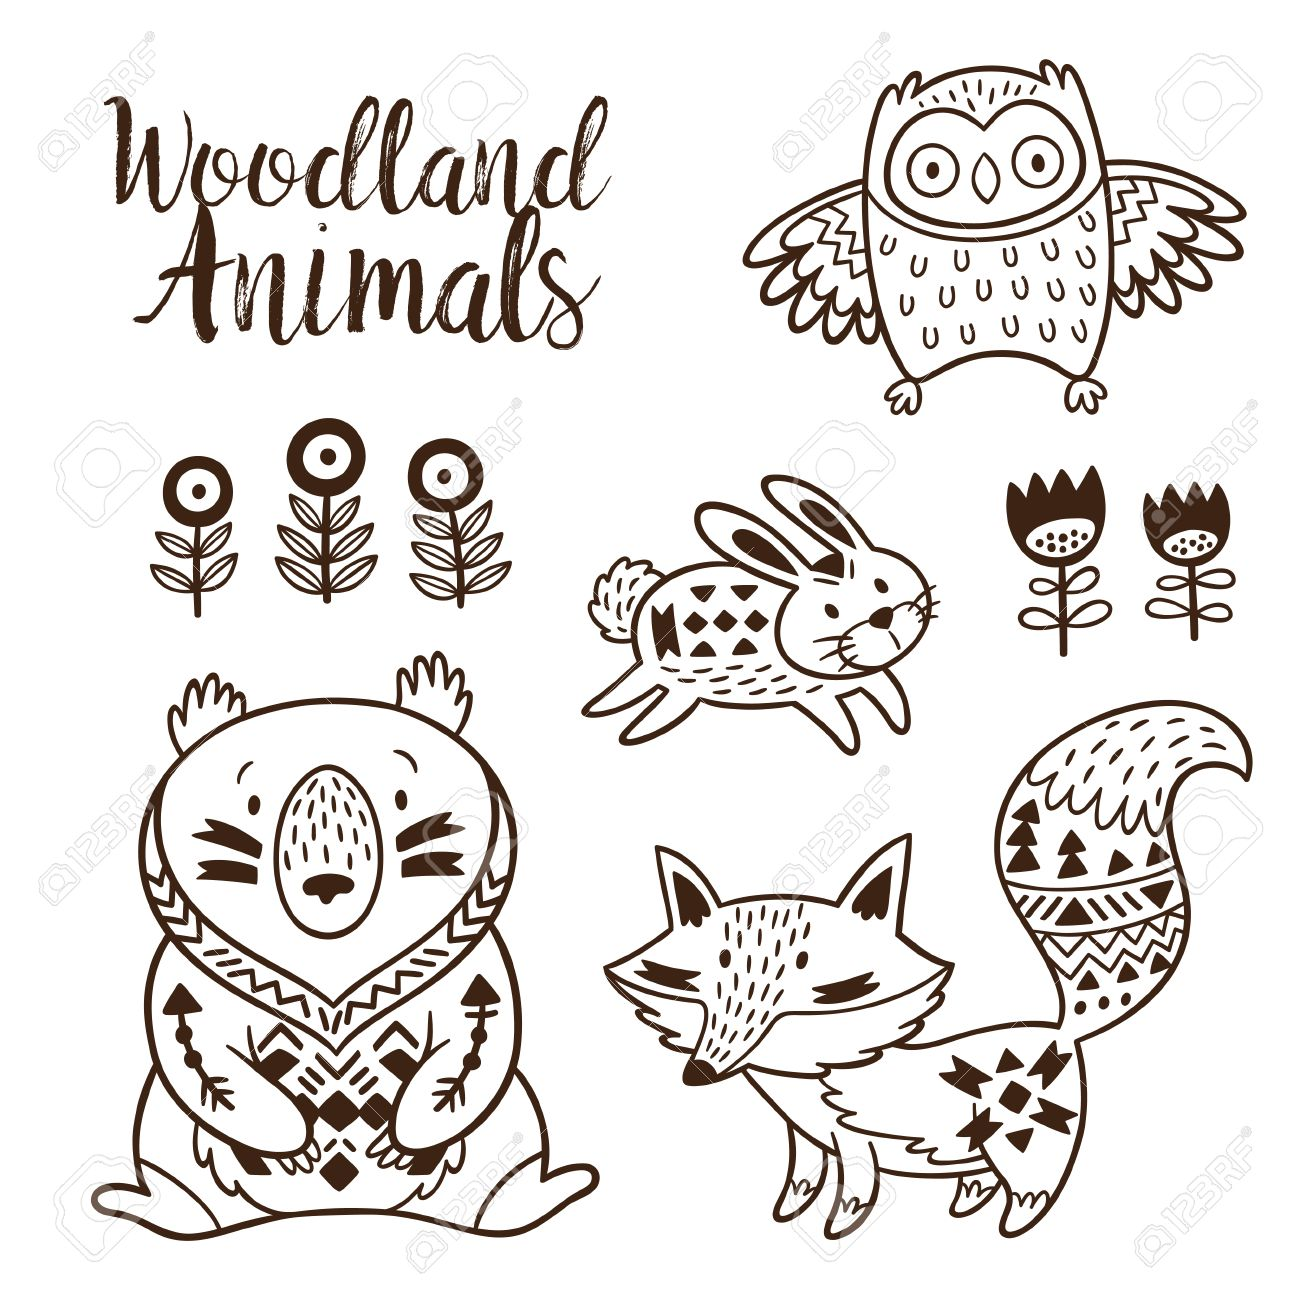 Vector woodland animal coloring pages for kids hand drawn on a white background coloring book ornamental tribal patterned illustration for tattoo